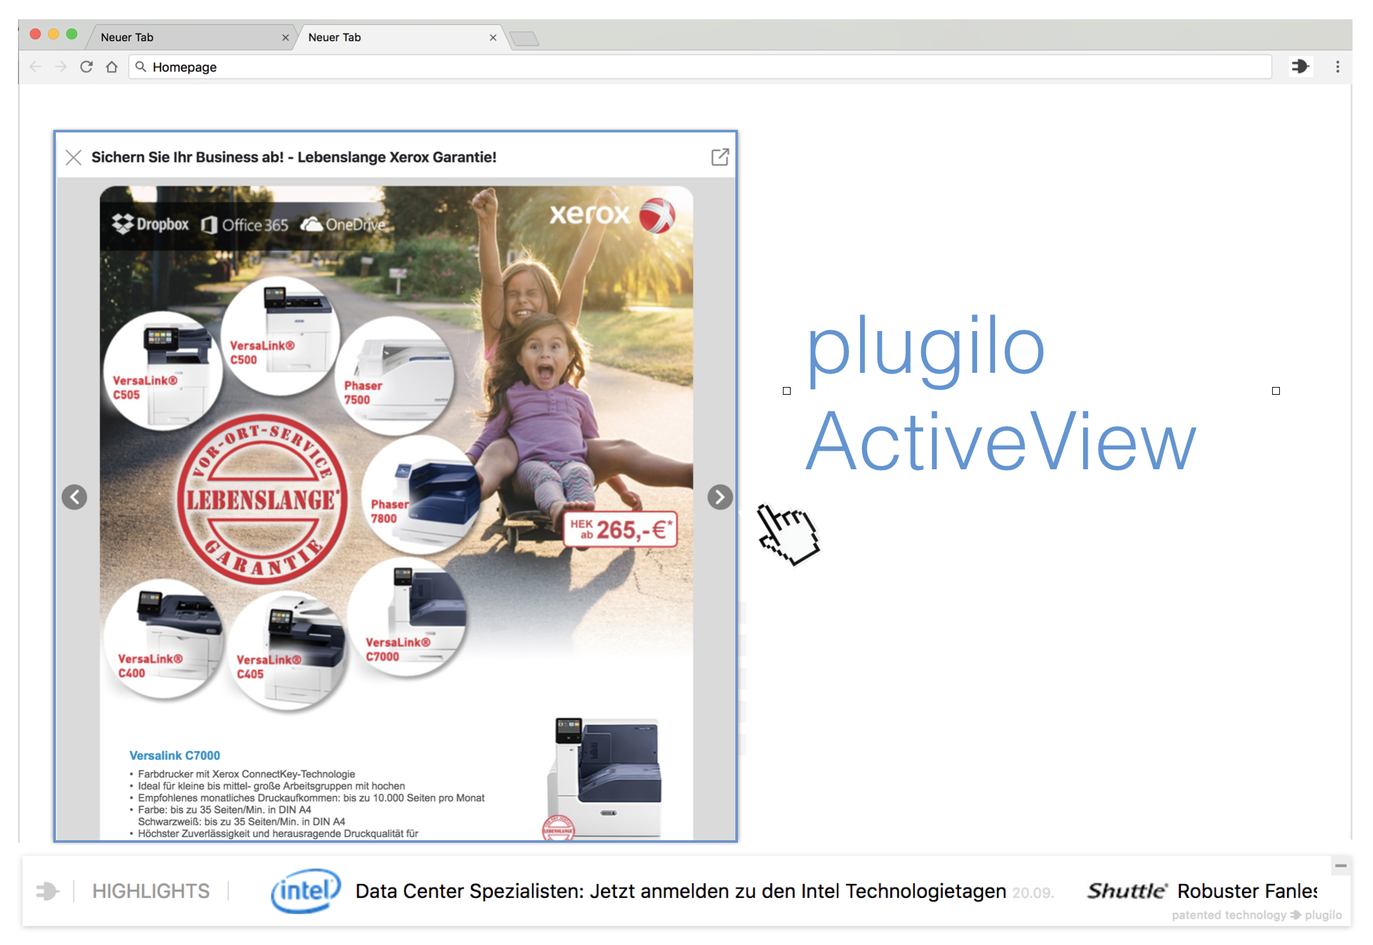 plugilo ActiveView